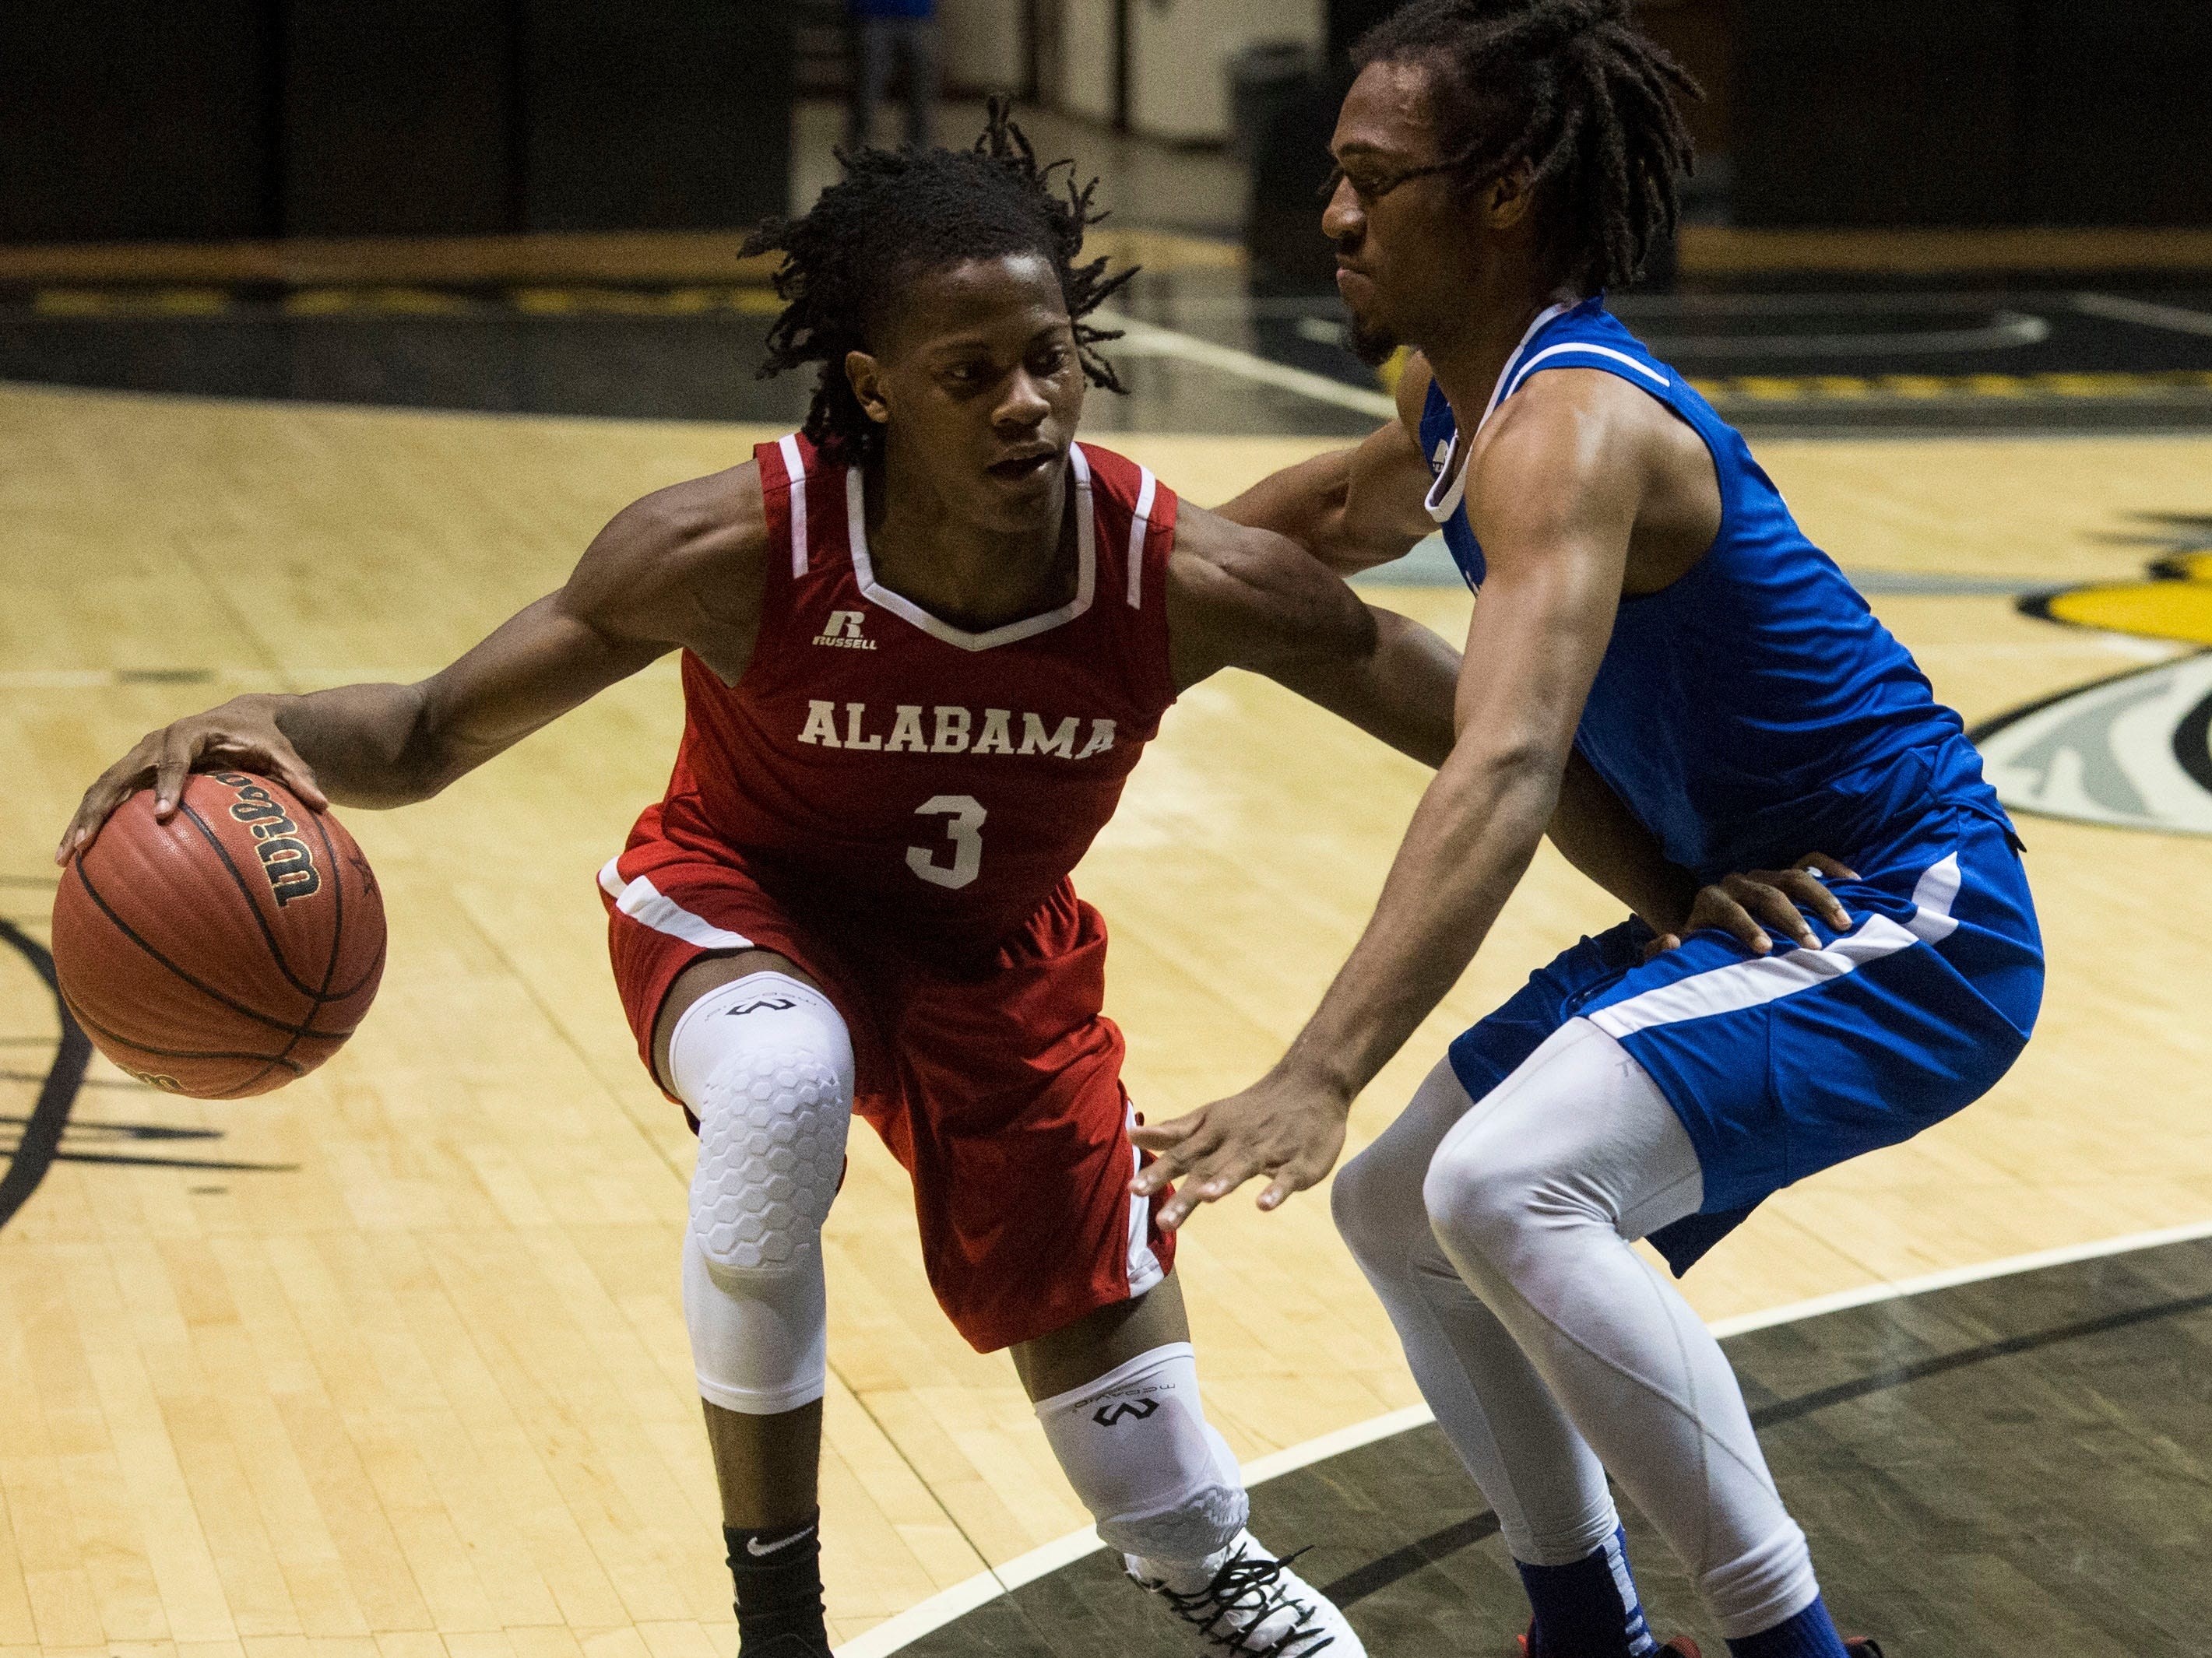 Alabama's Cameron Tucker (3) dribbles the ball during the Alabama-Mississippi All-Star game at the Dunn-Oliver Acadome in Montgomery, Ala., on Friday, March 15, 2019. Alabama All-stars defeated the Mississippi All-stars 107-90.